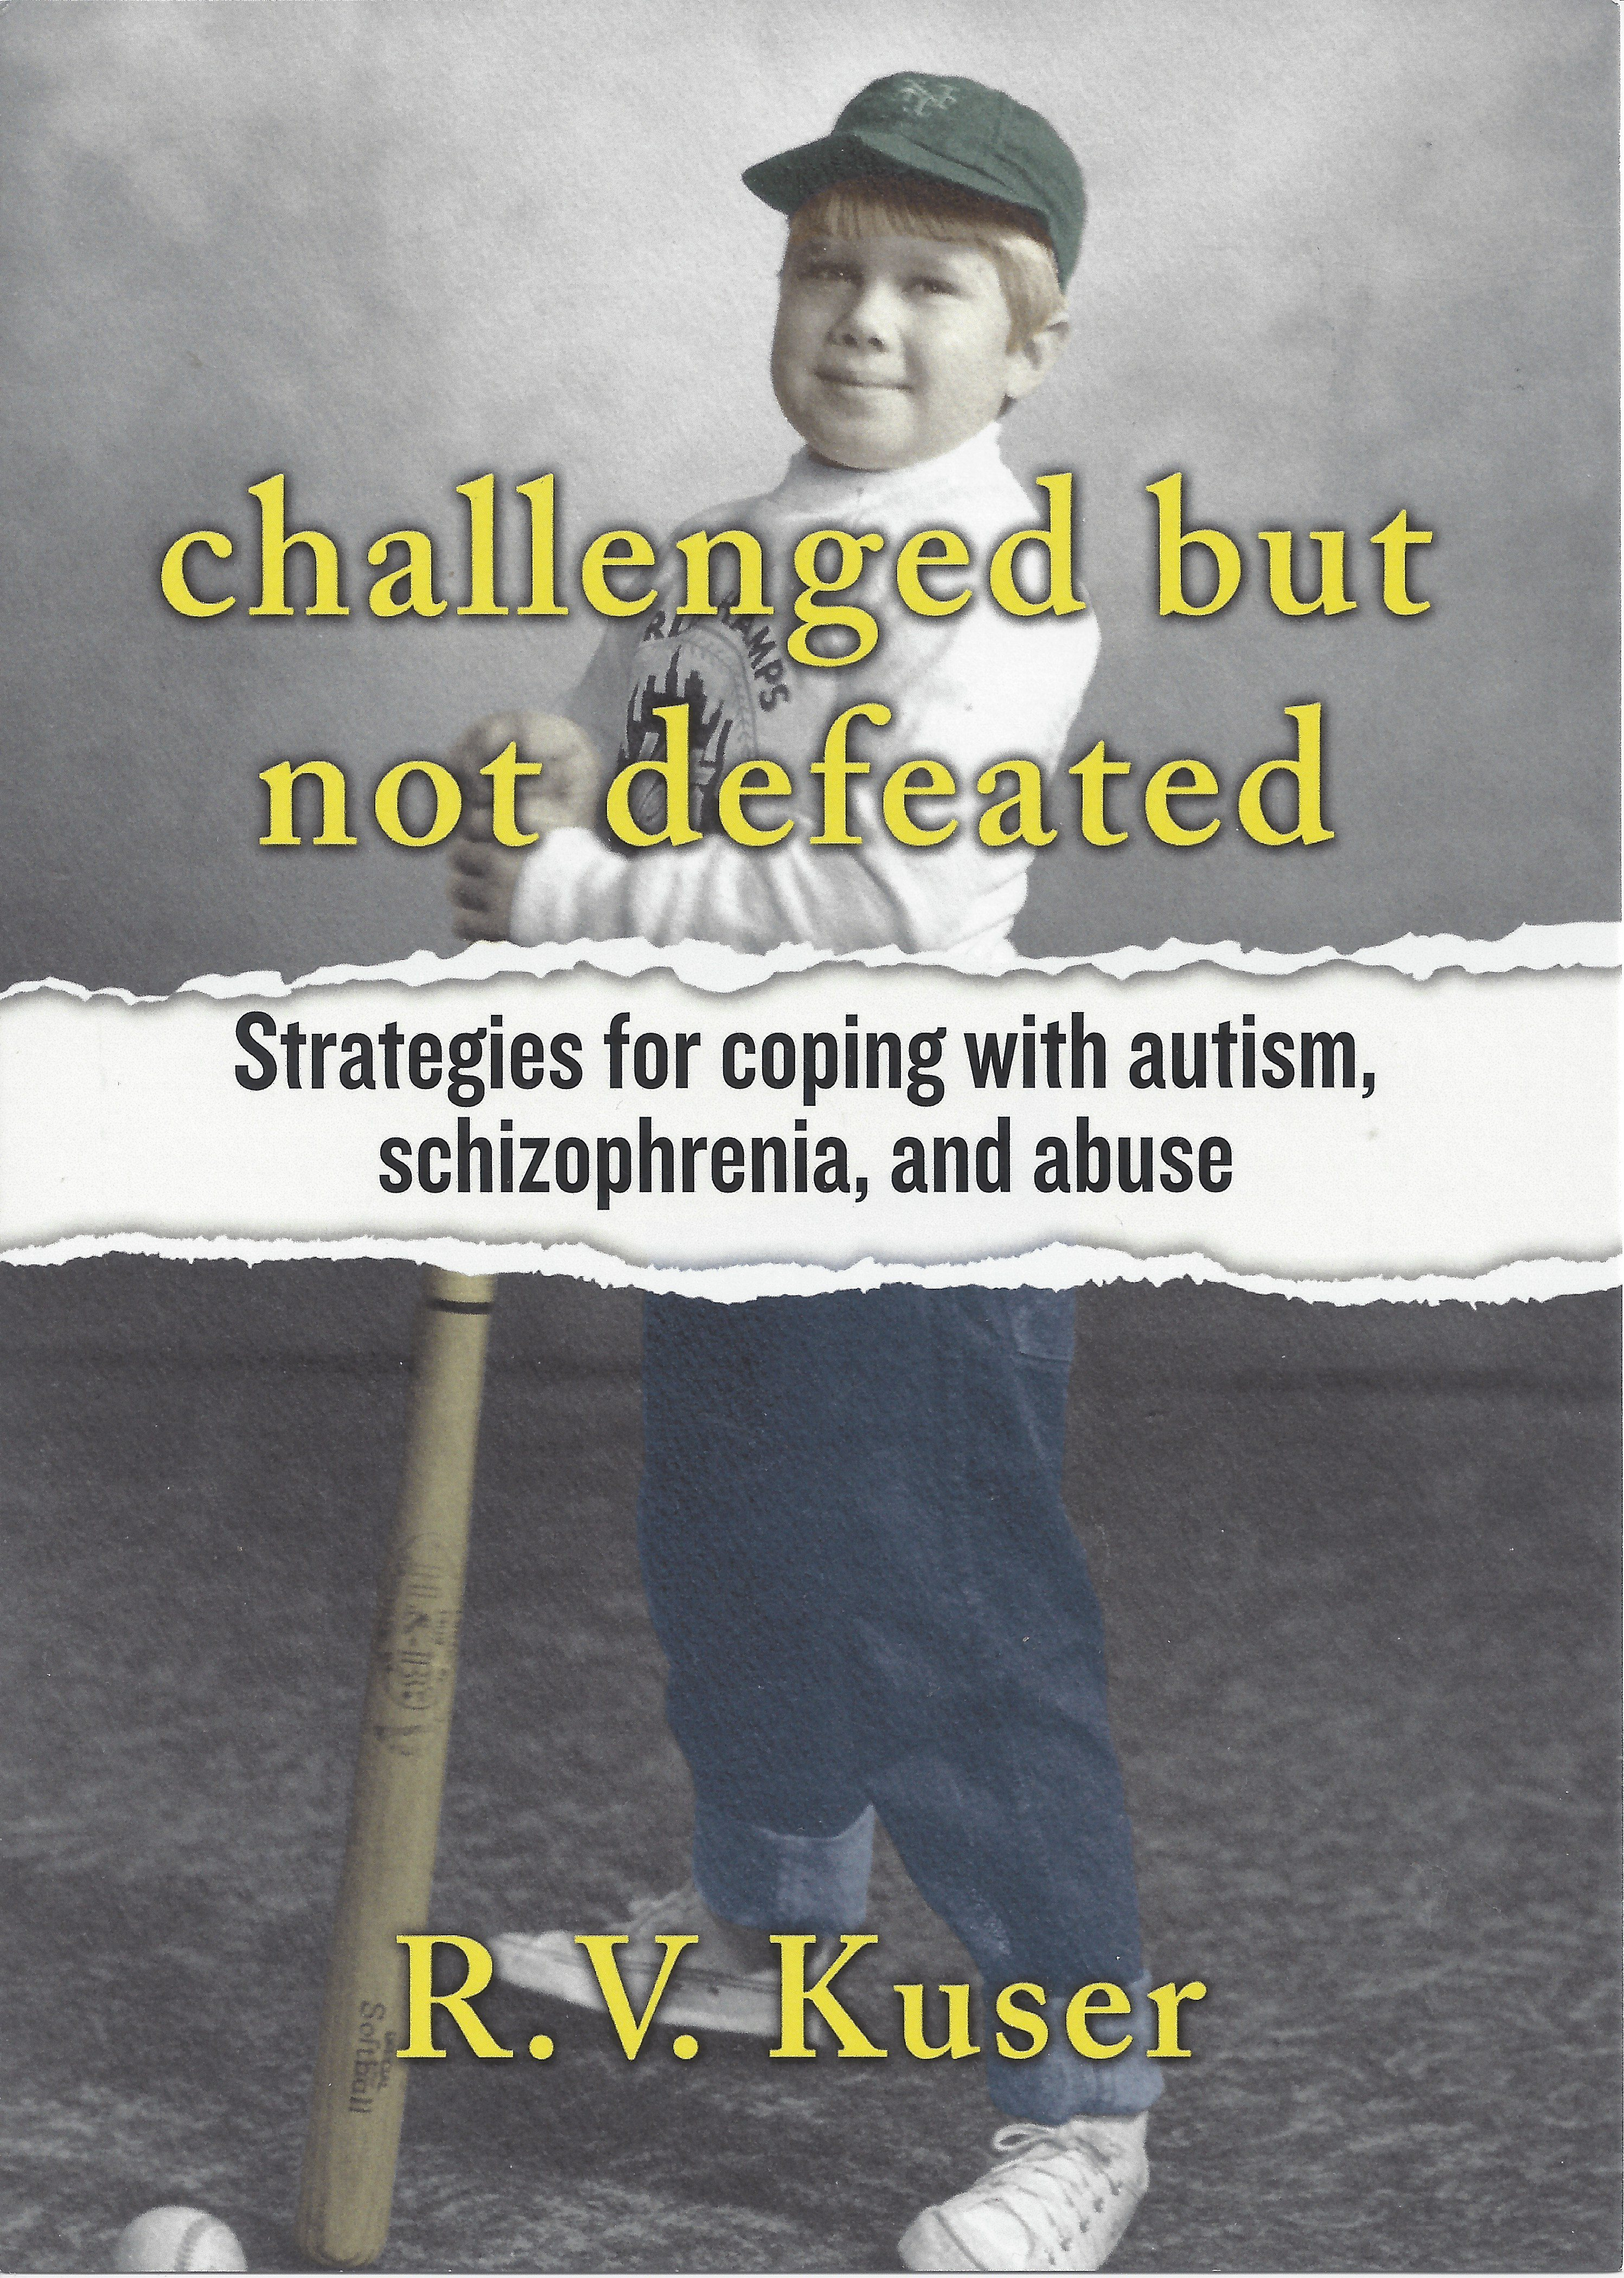 challenged but not defeated  by  R. V. Kuser